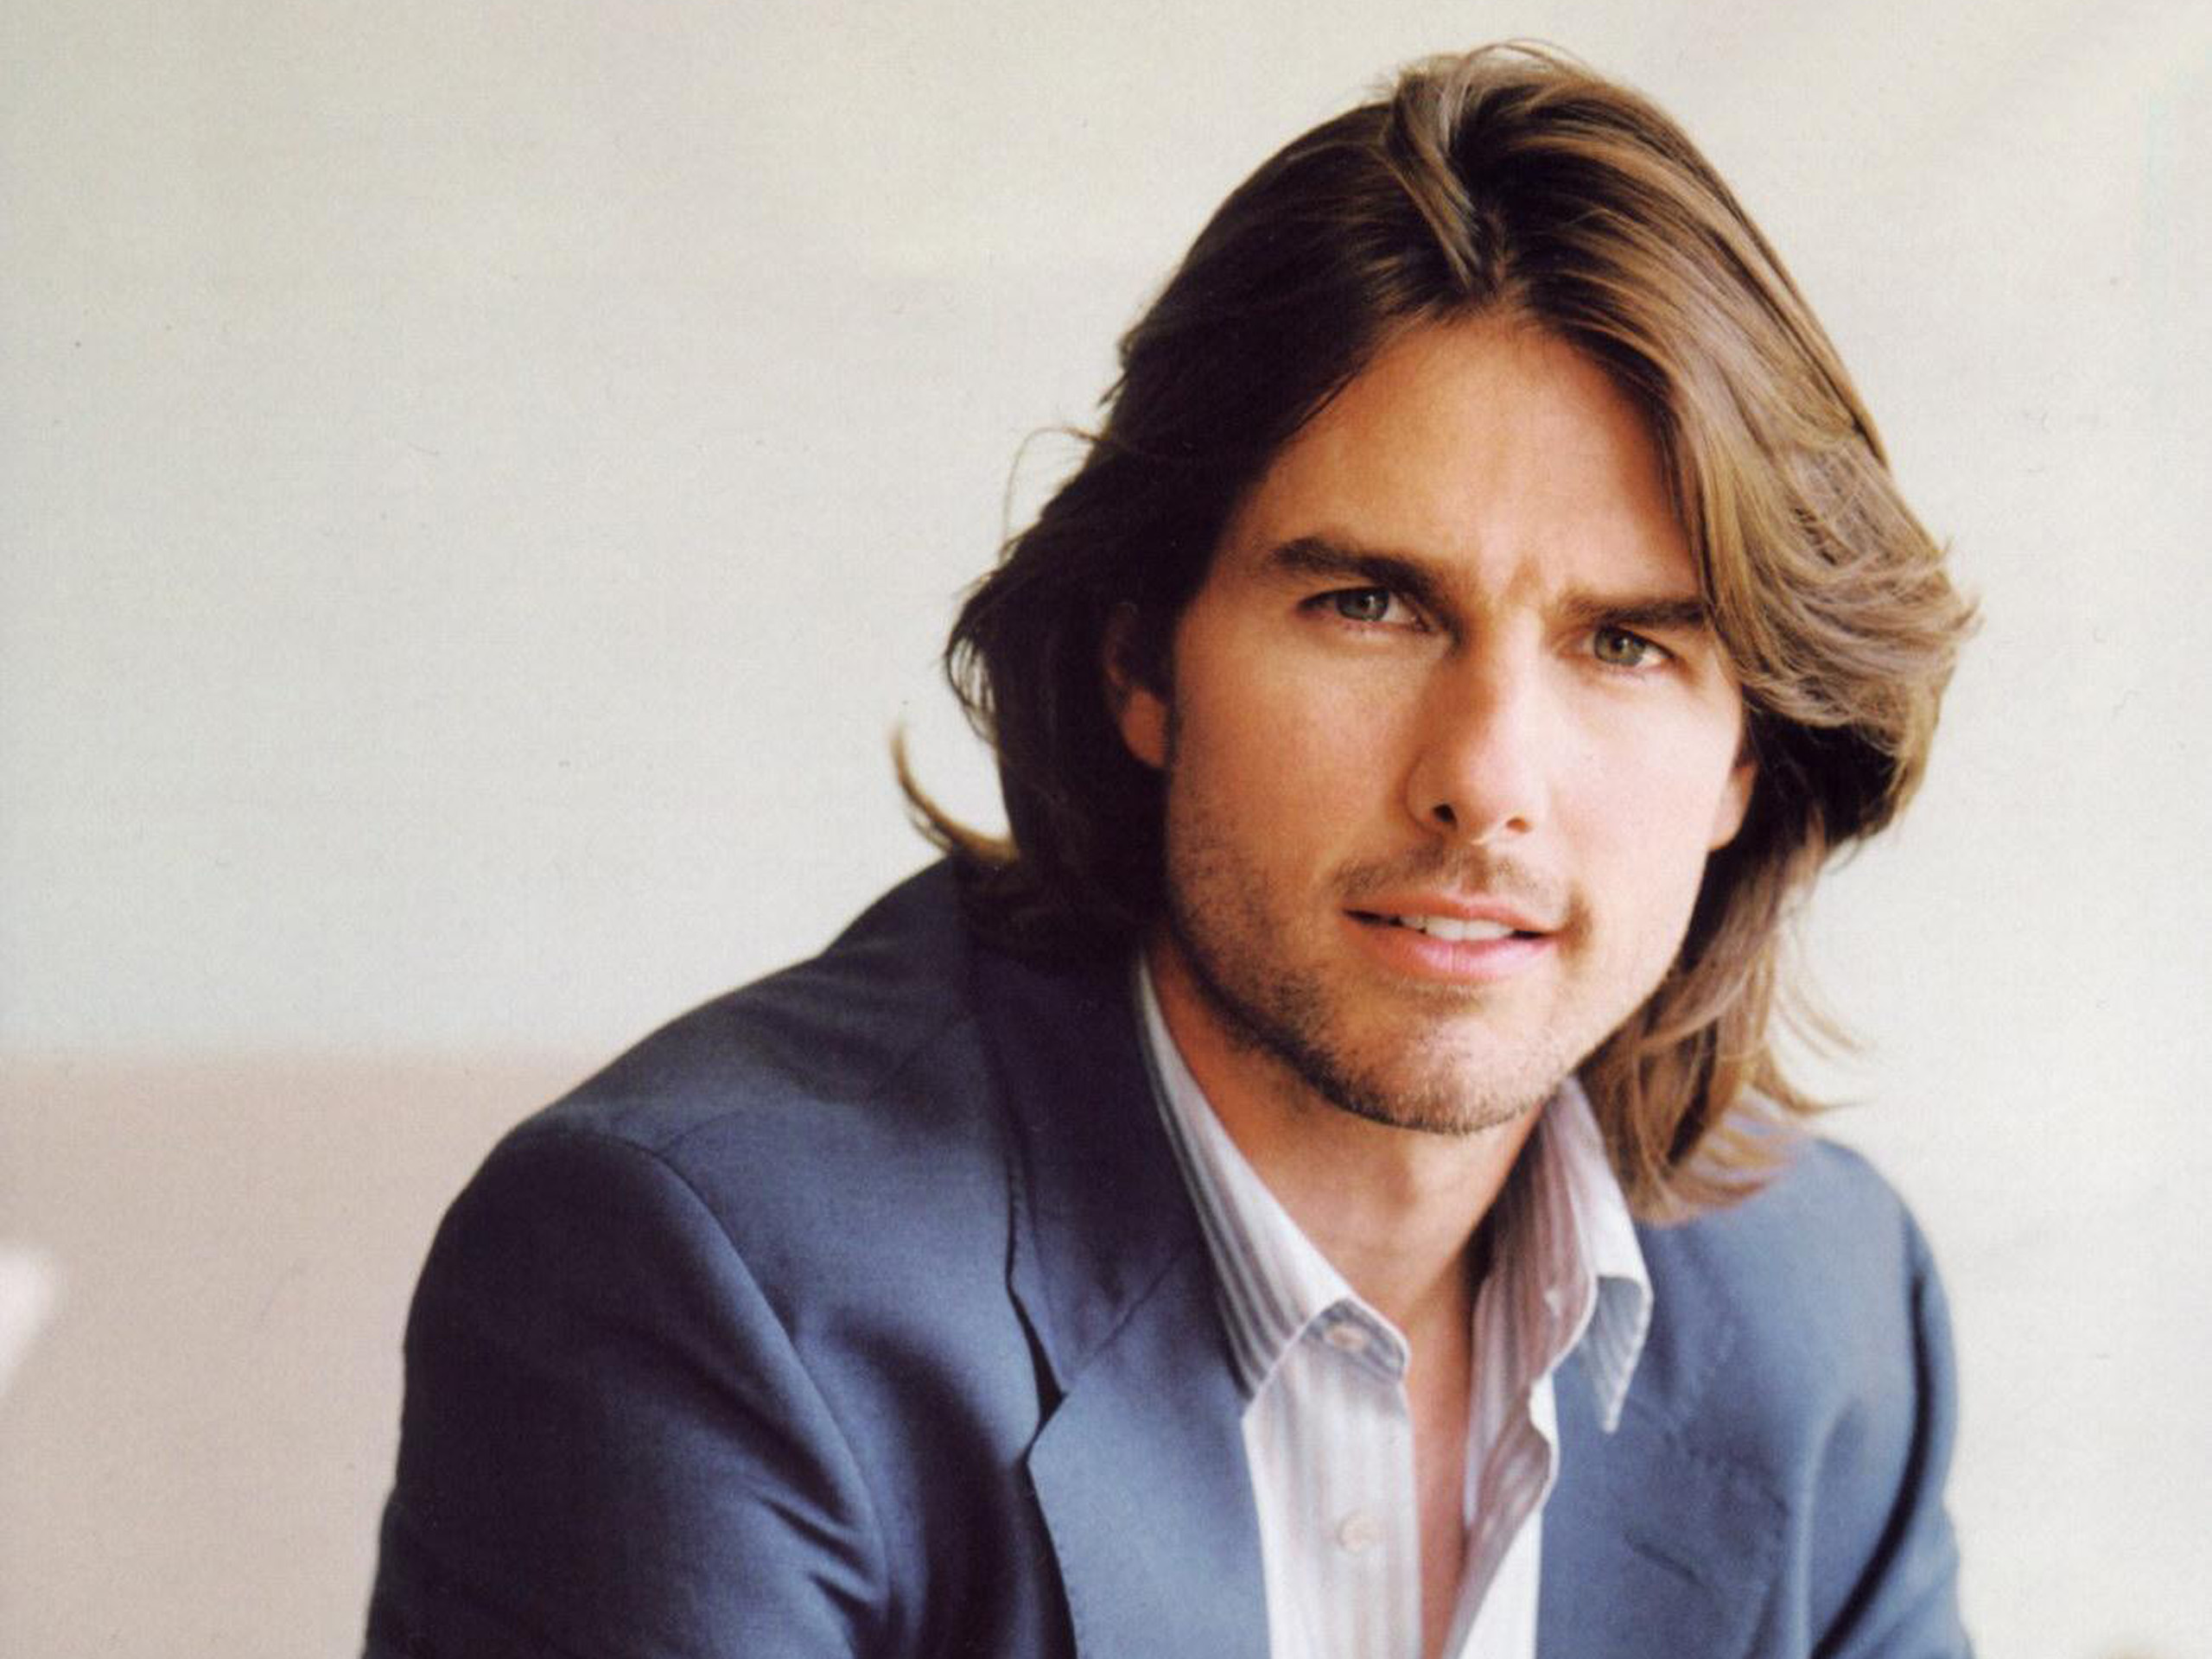 Tom Cruise Wallpaper 12 photo